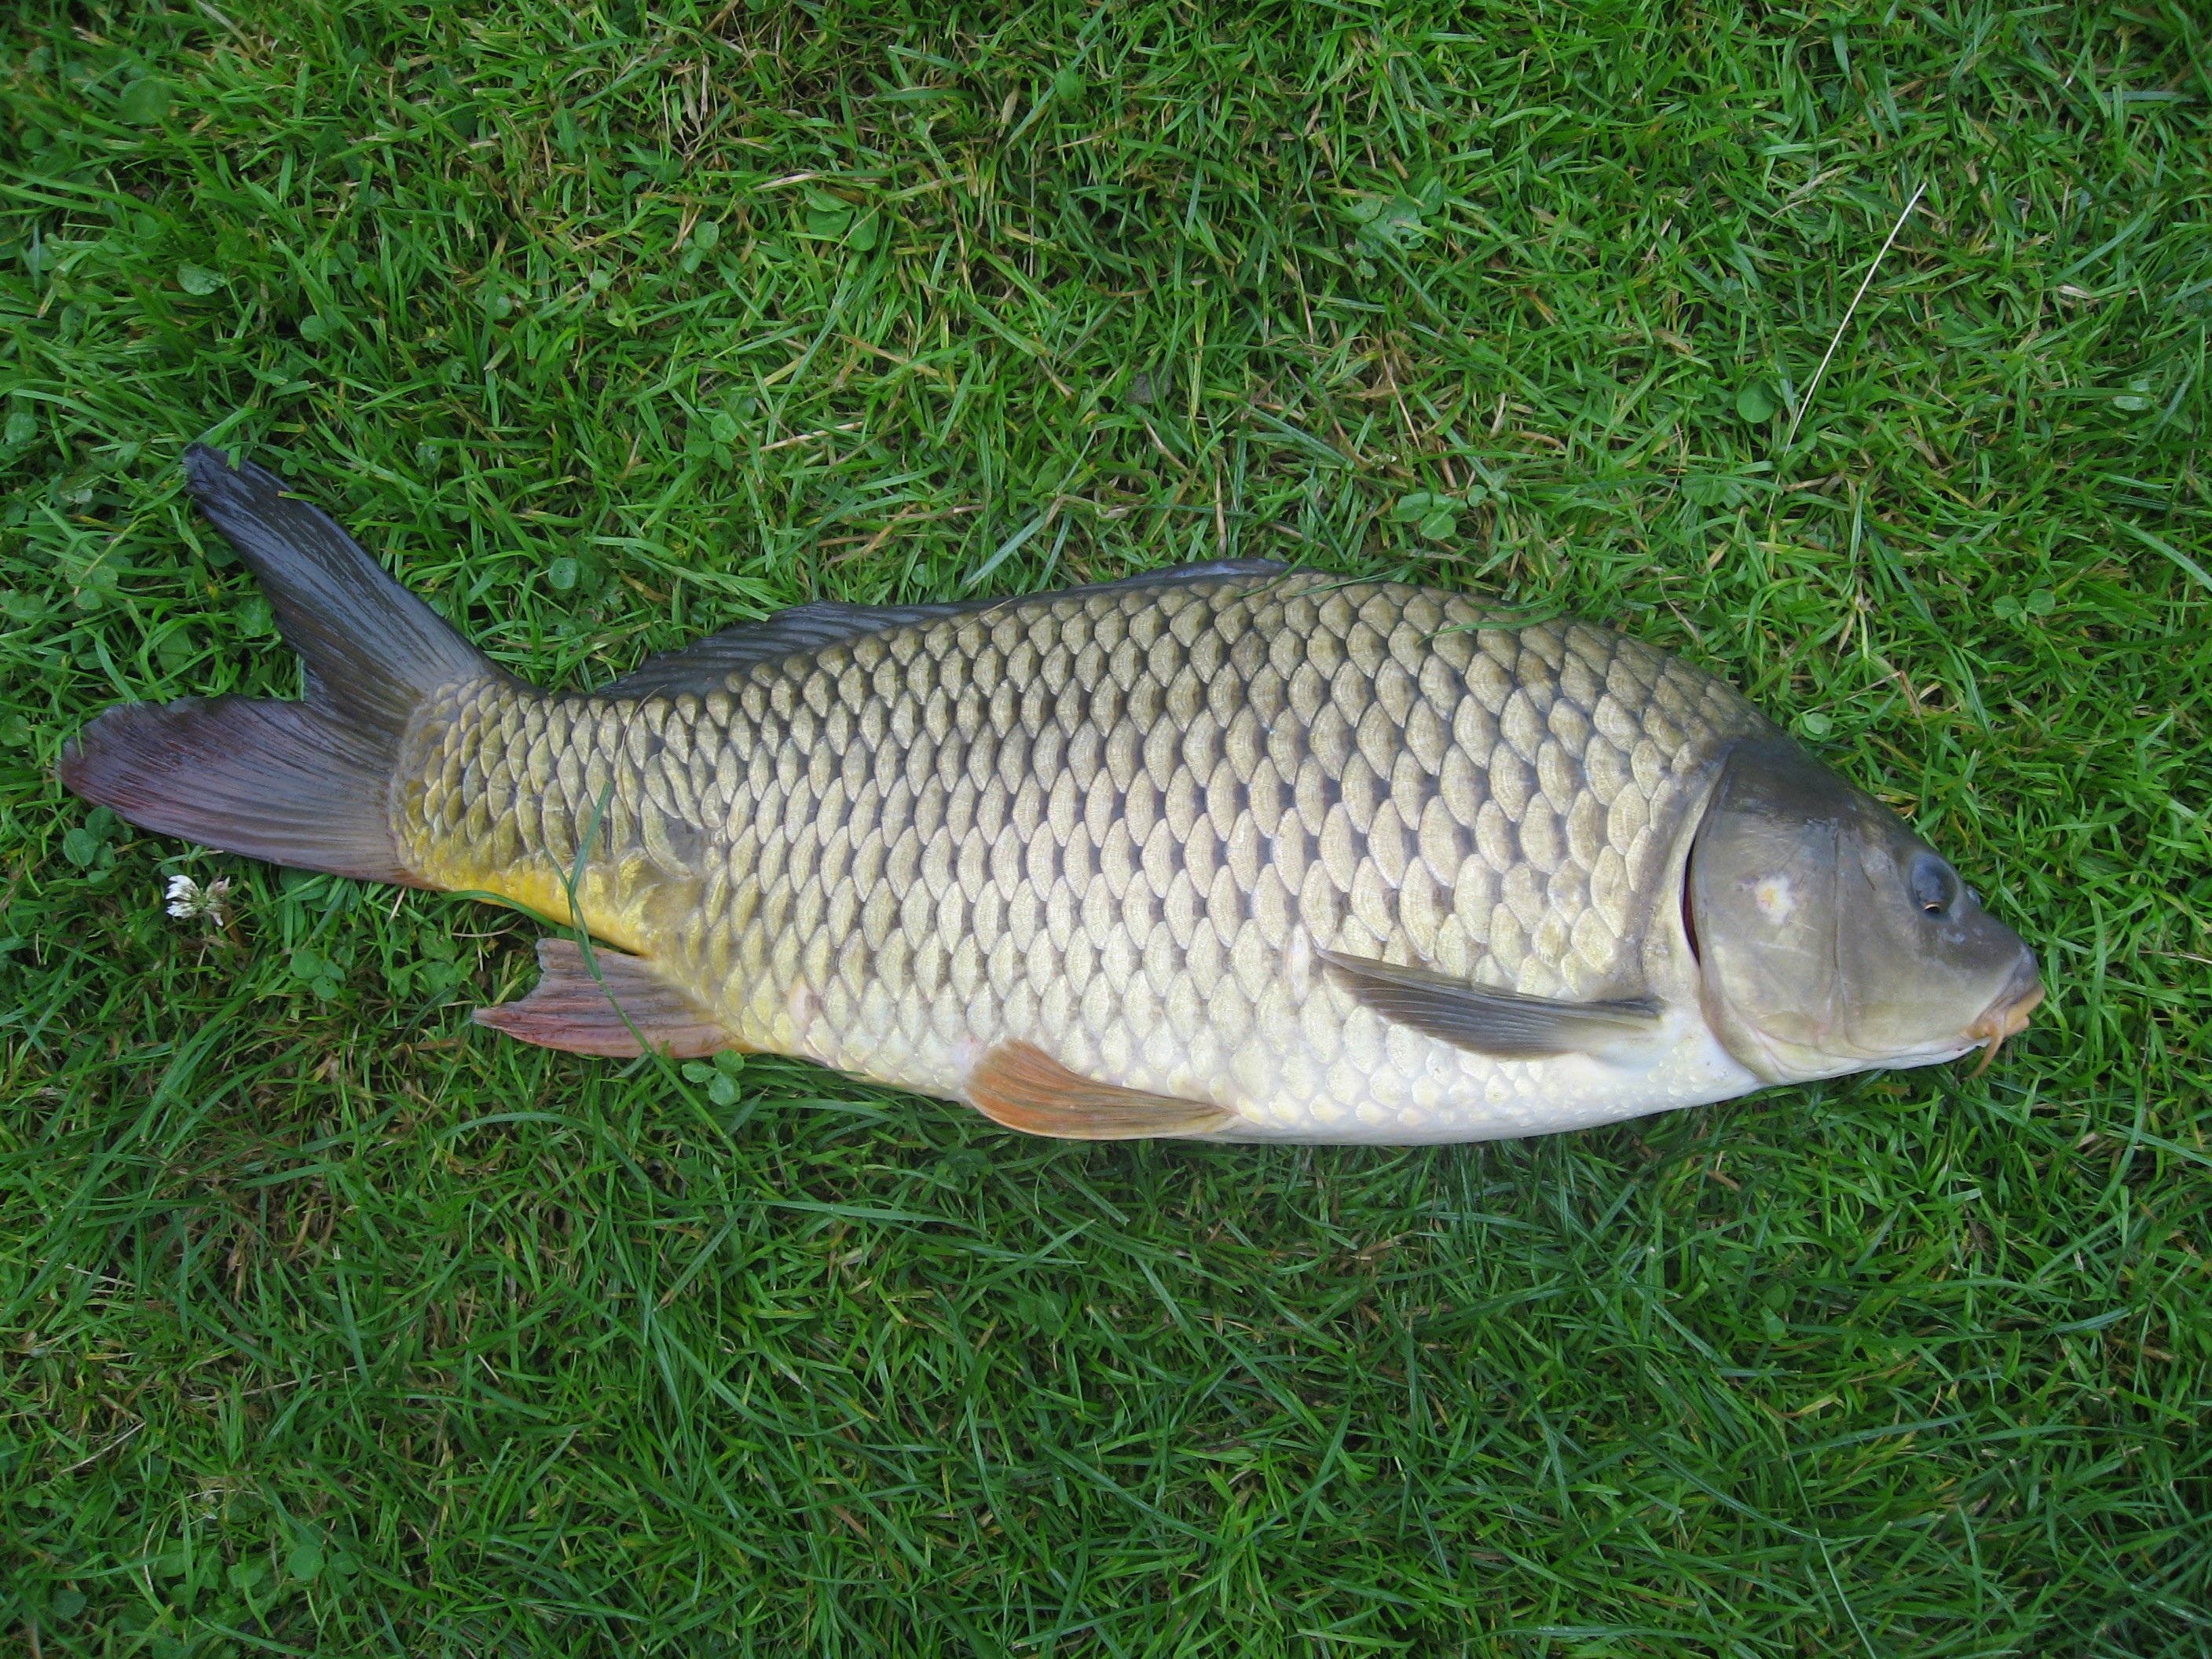 http://upload.wikimedia.org/wikipedia/commons/9/9b/Cyprinus_carpio.jpeg